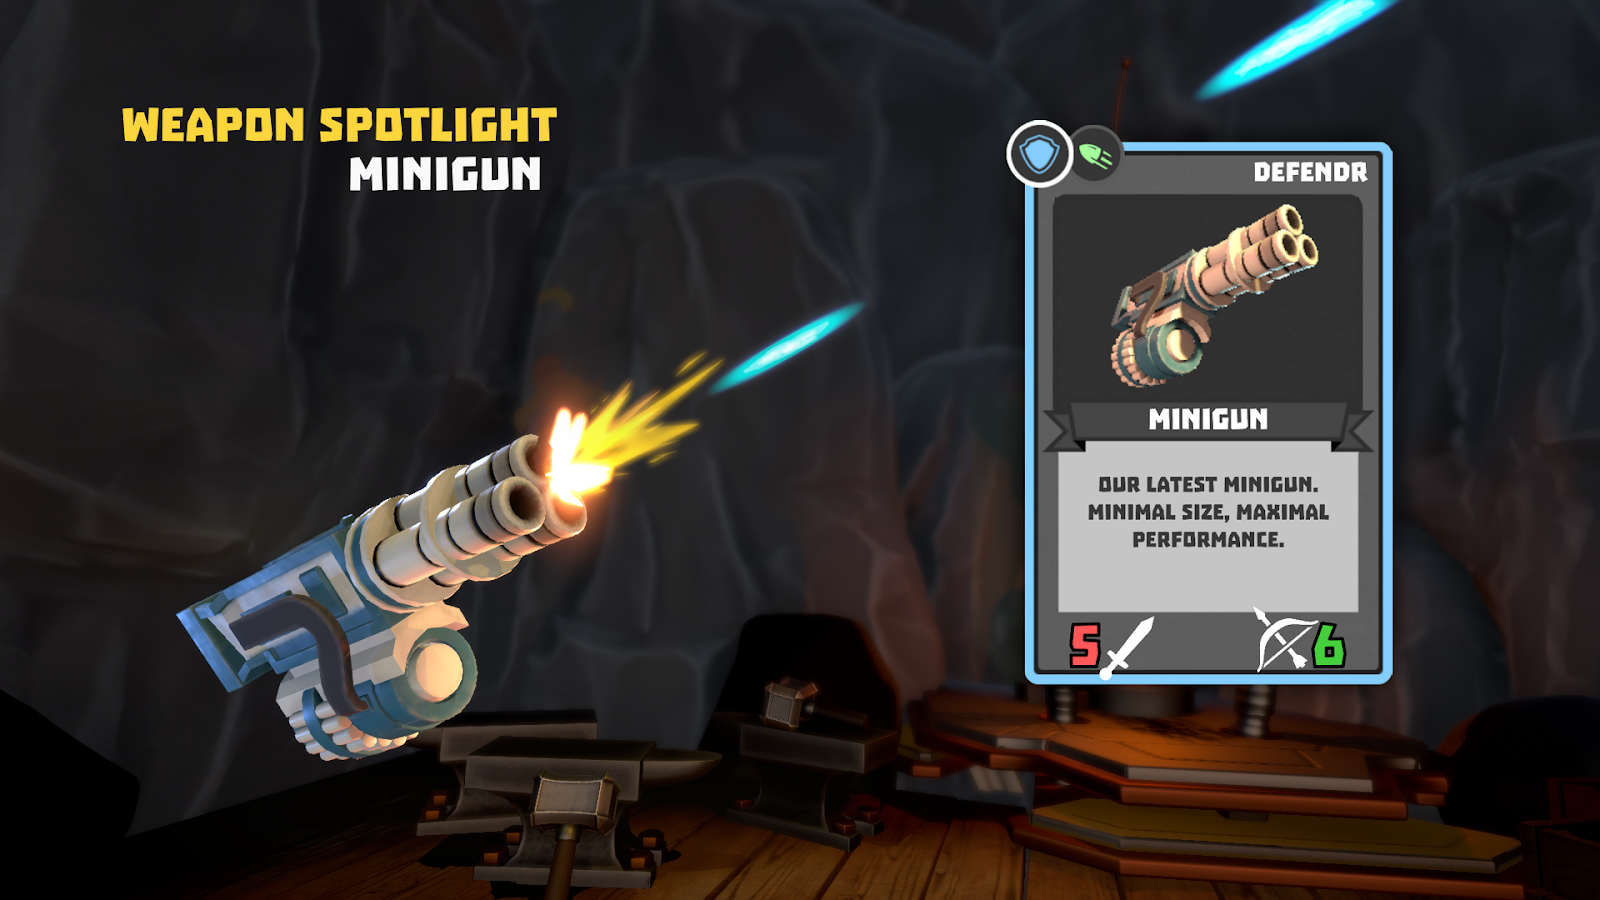 WeaponSpotlightImageMinigun